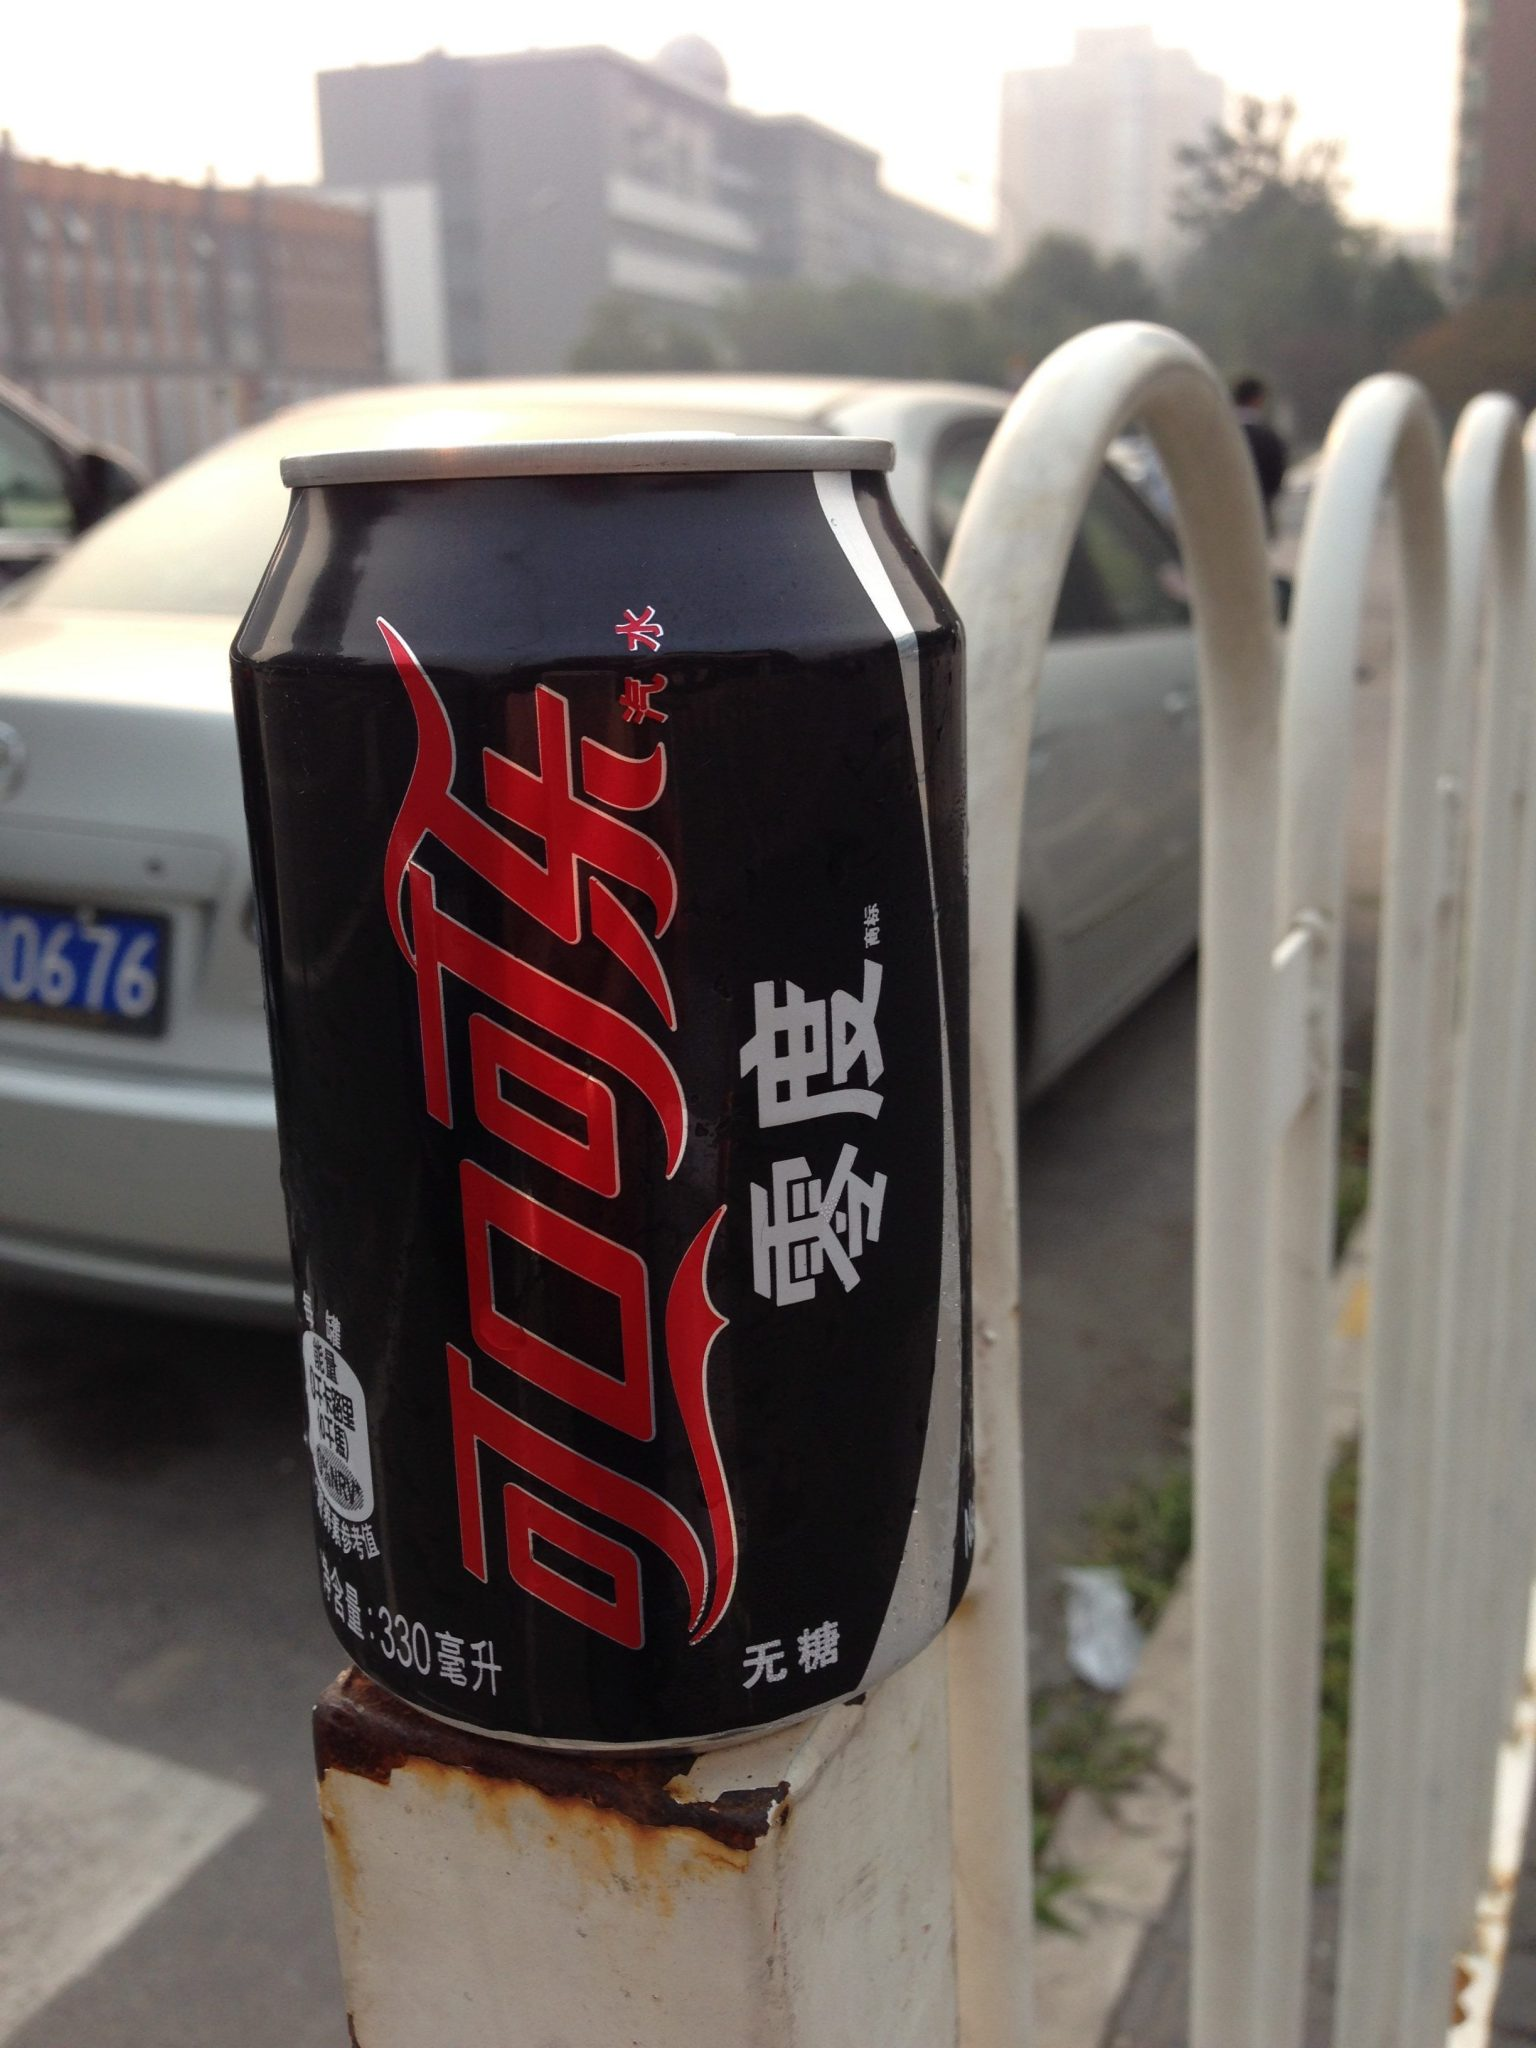 The Culture of China; also on a can of Coke